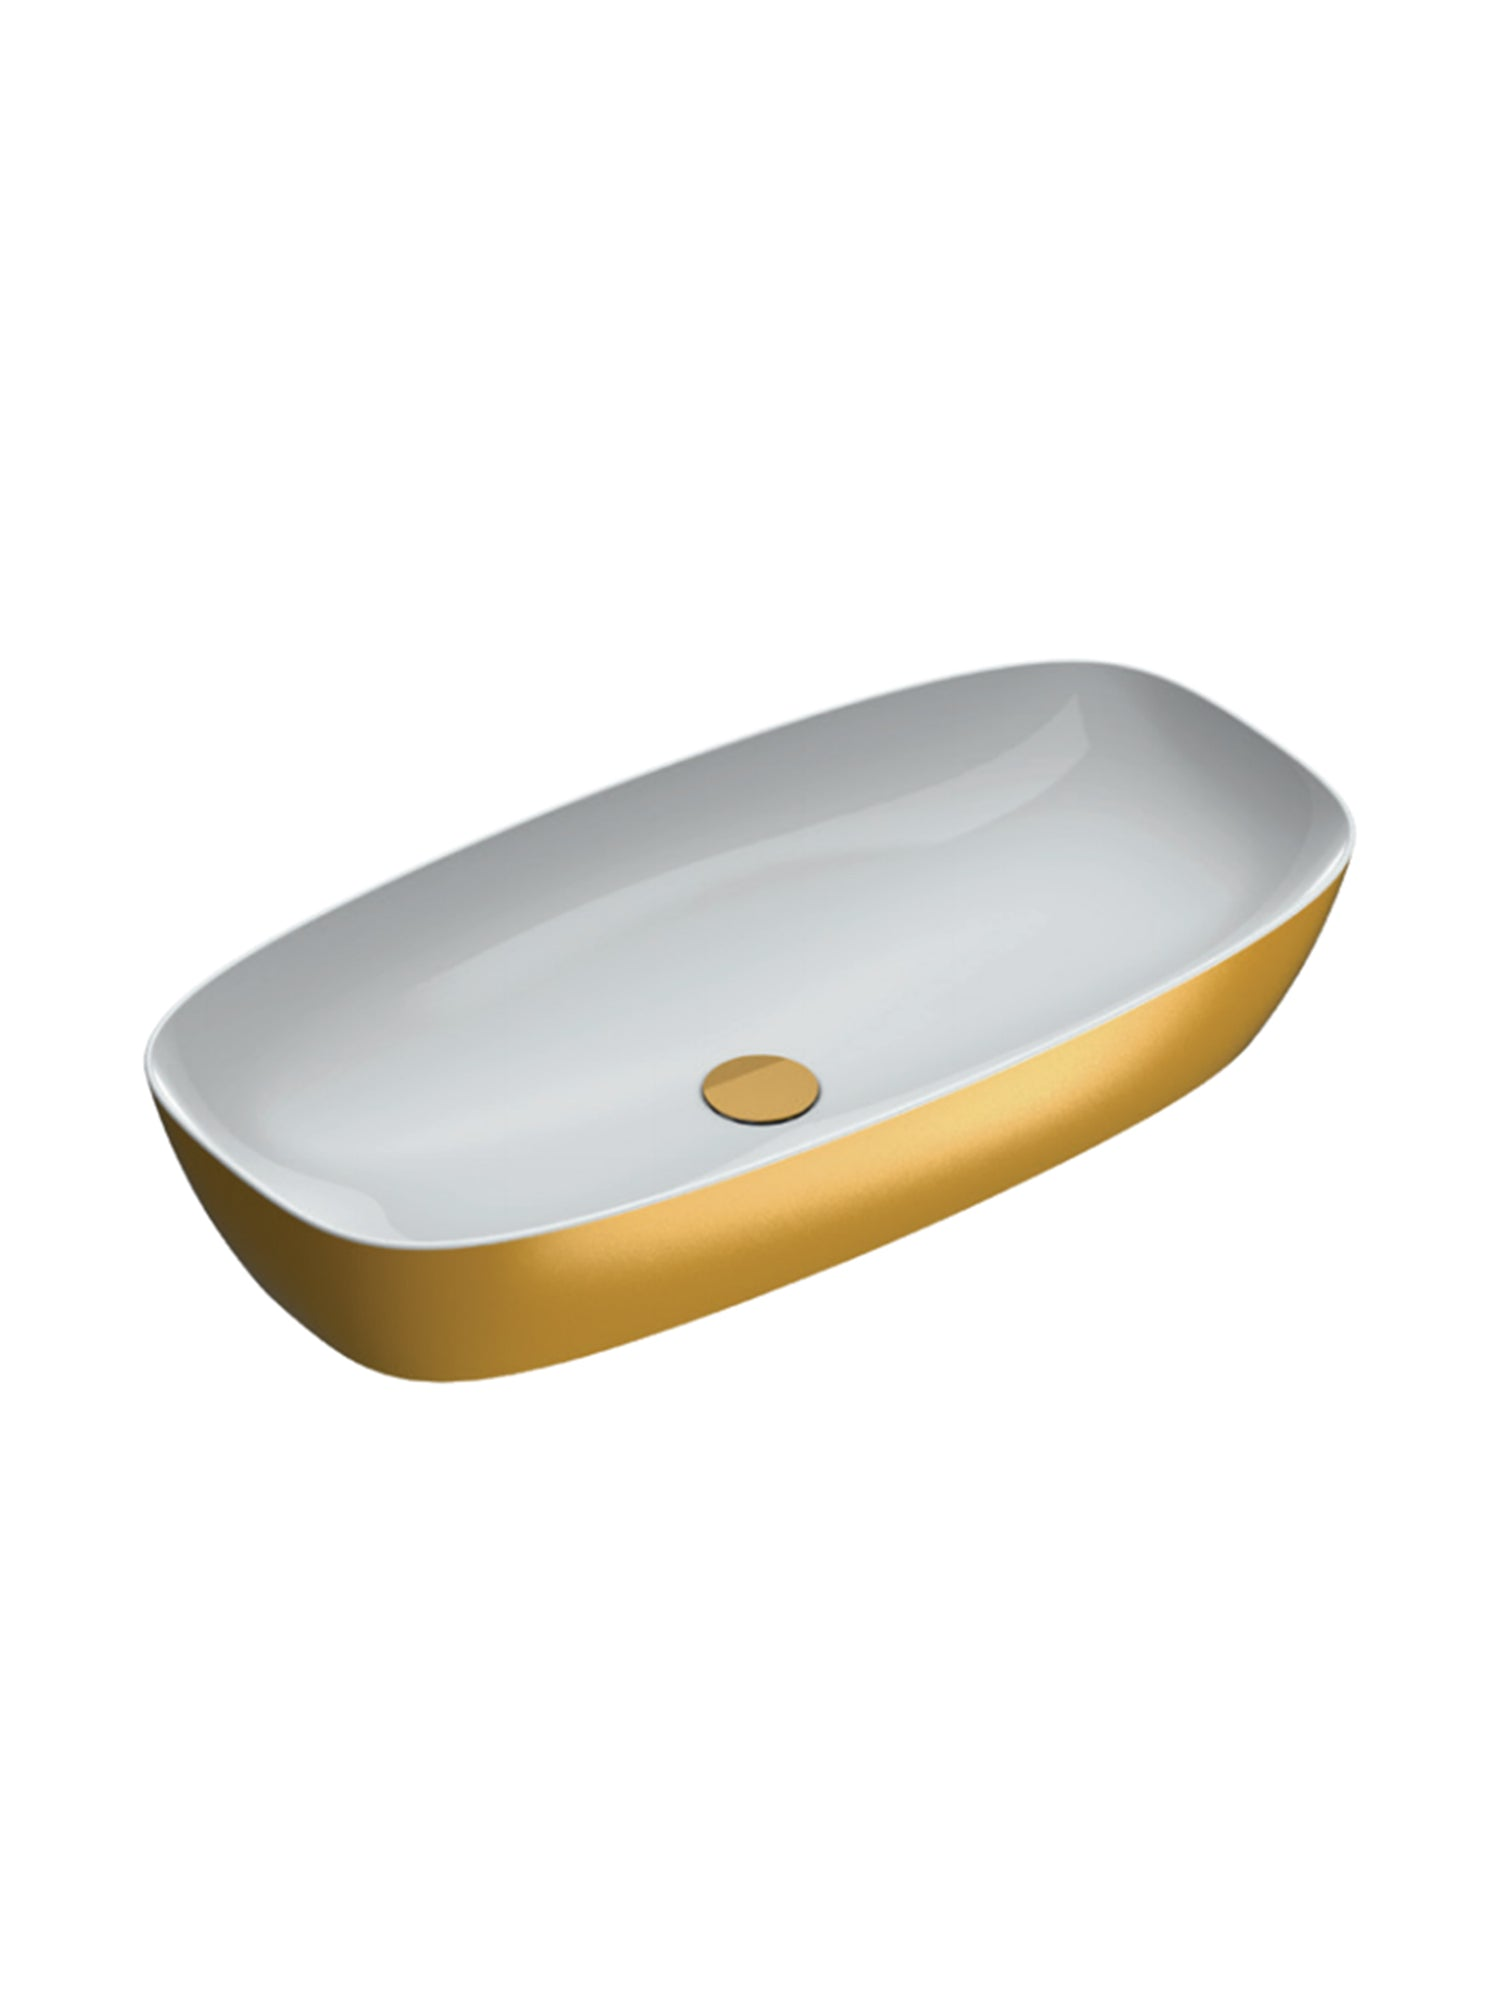 Gold & Silver Green Lux 80 Countertop Basin